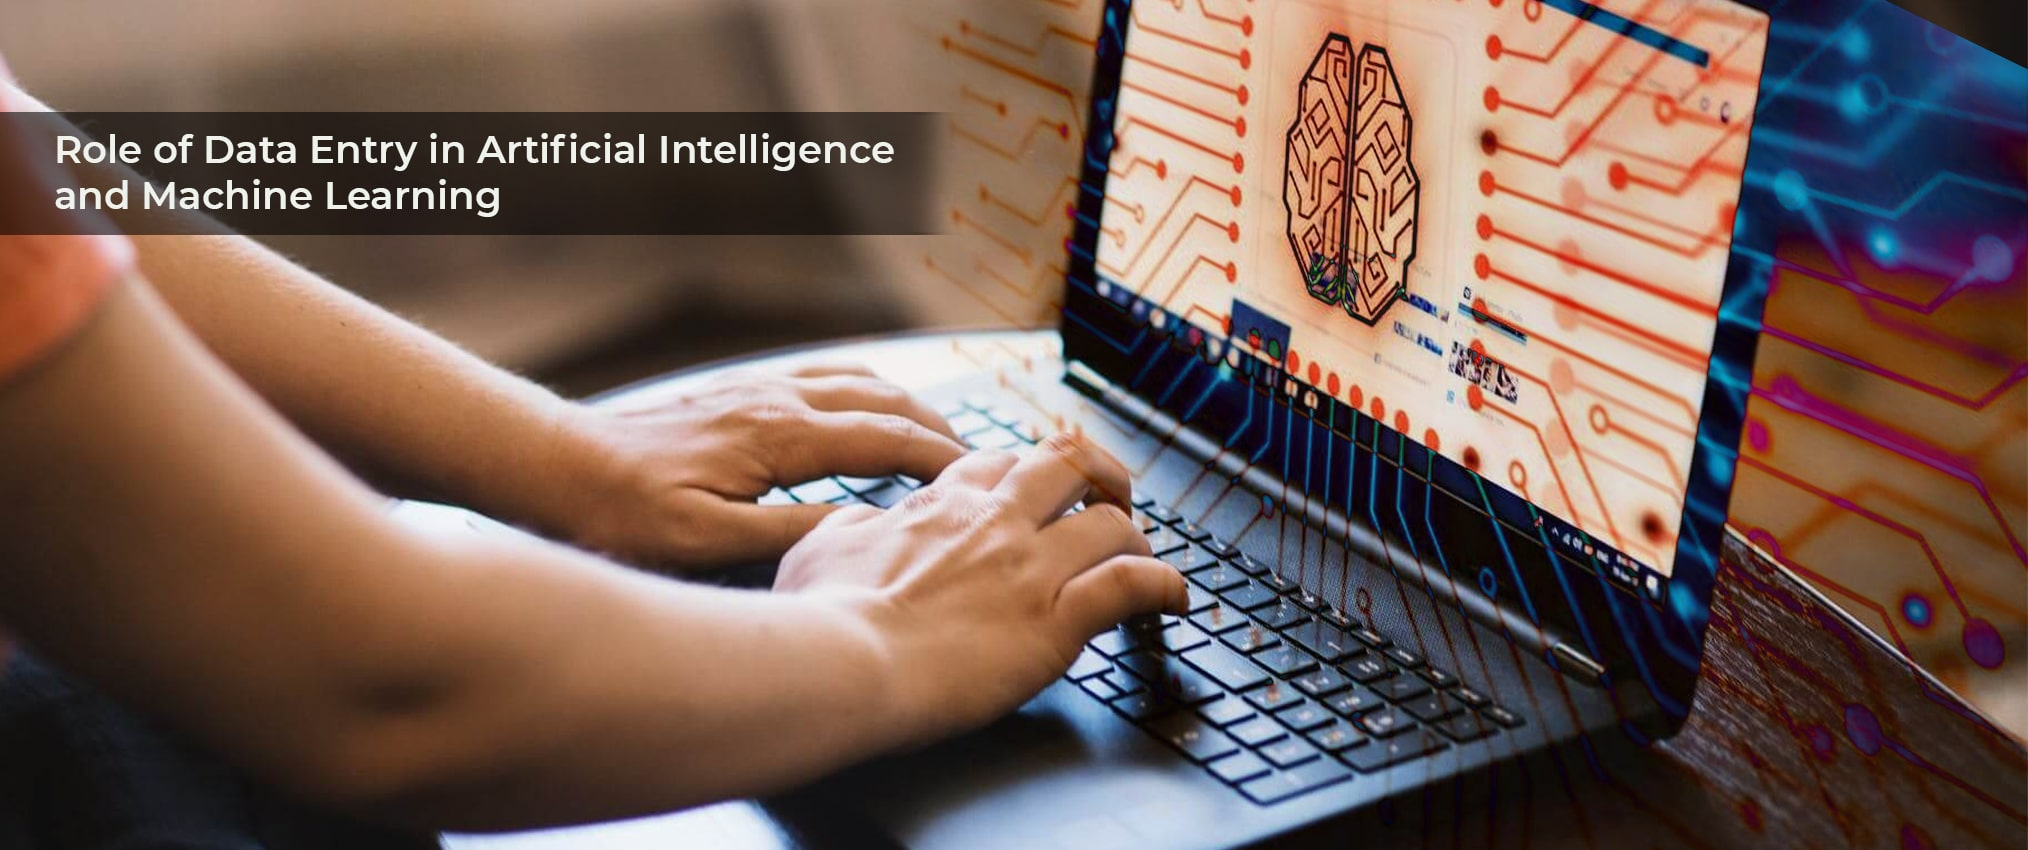 Importance of Data Entry in Artificial Intelligence and Machine Learning